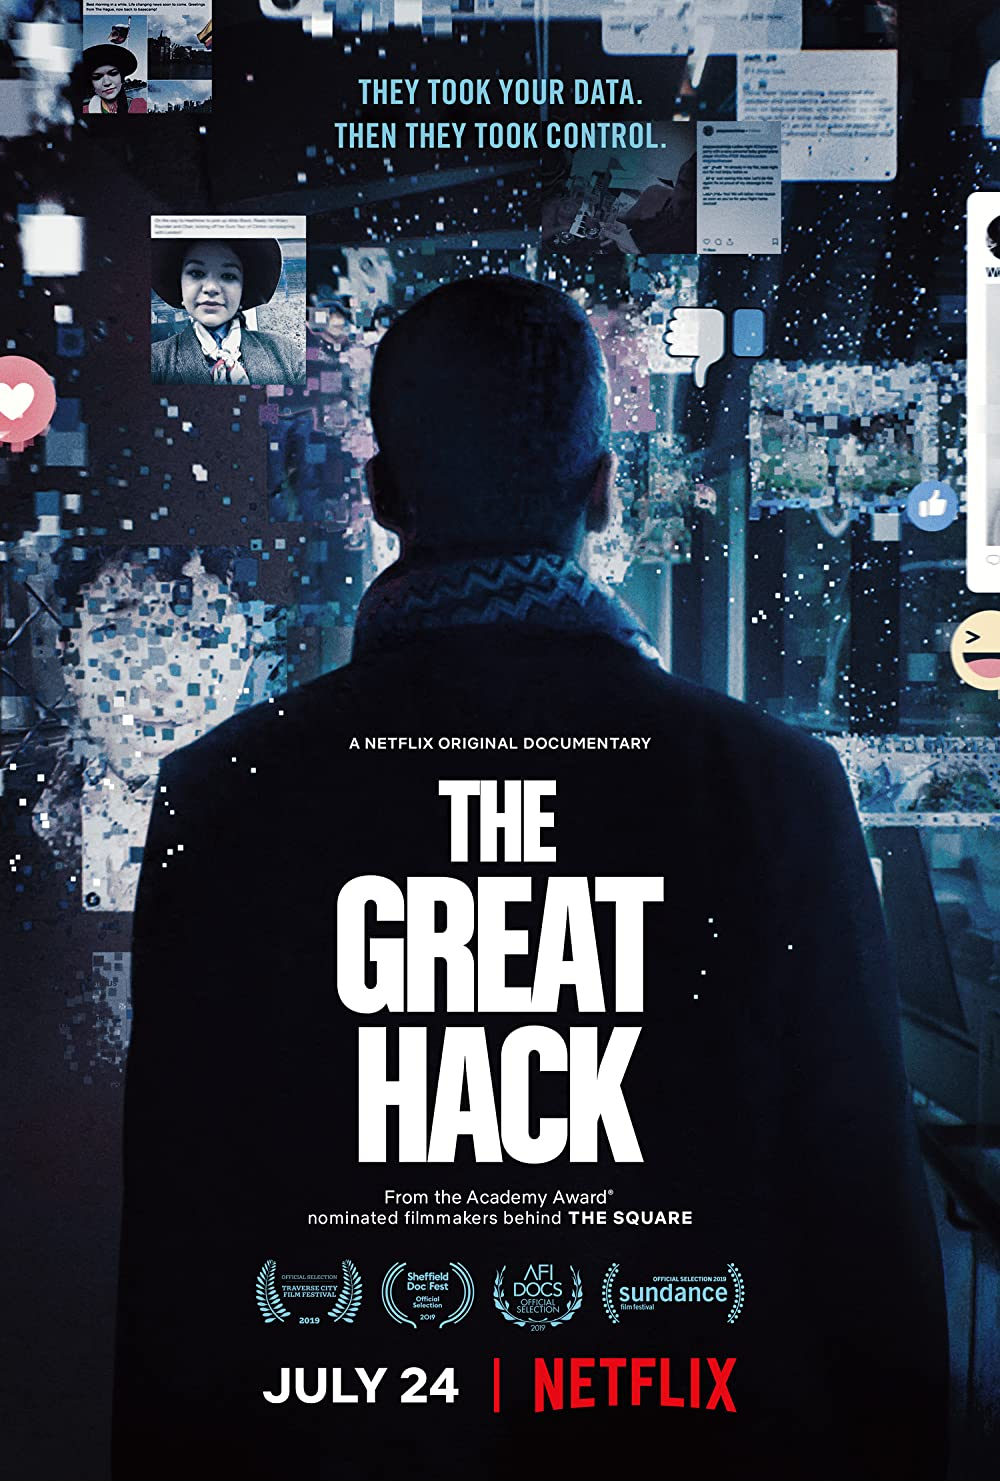 Cambridge Analyticas großer Hack: Directed by Karim Amer, Jehane Noujaim. With Brittany Kaiser, David Carroll, Paul-Olivier Dehaye, Ravi Naik. The Cambridge Analytica scandal is examined through the roles of several affected persons.